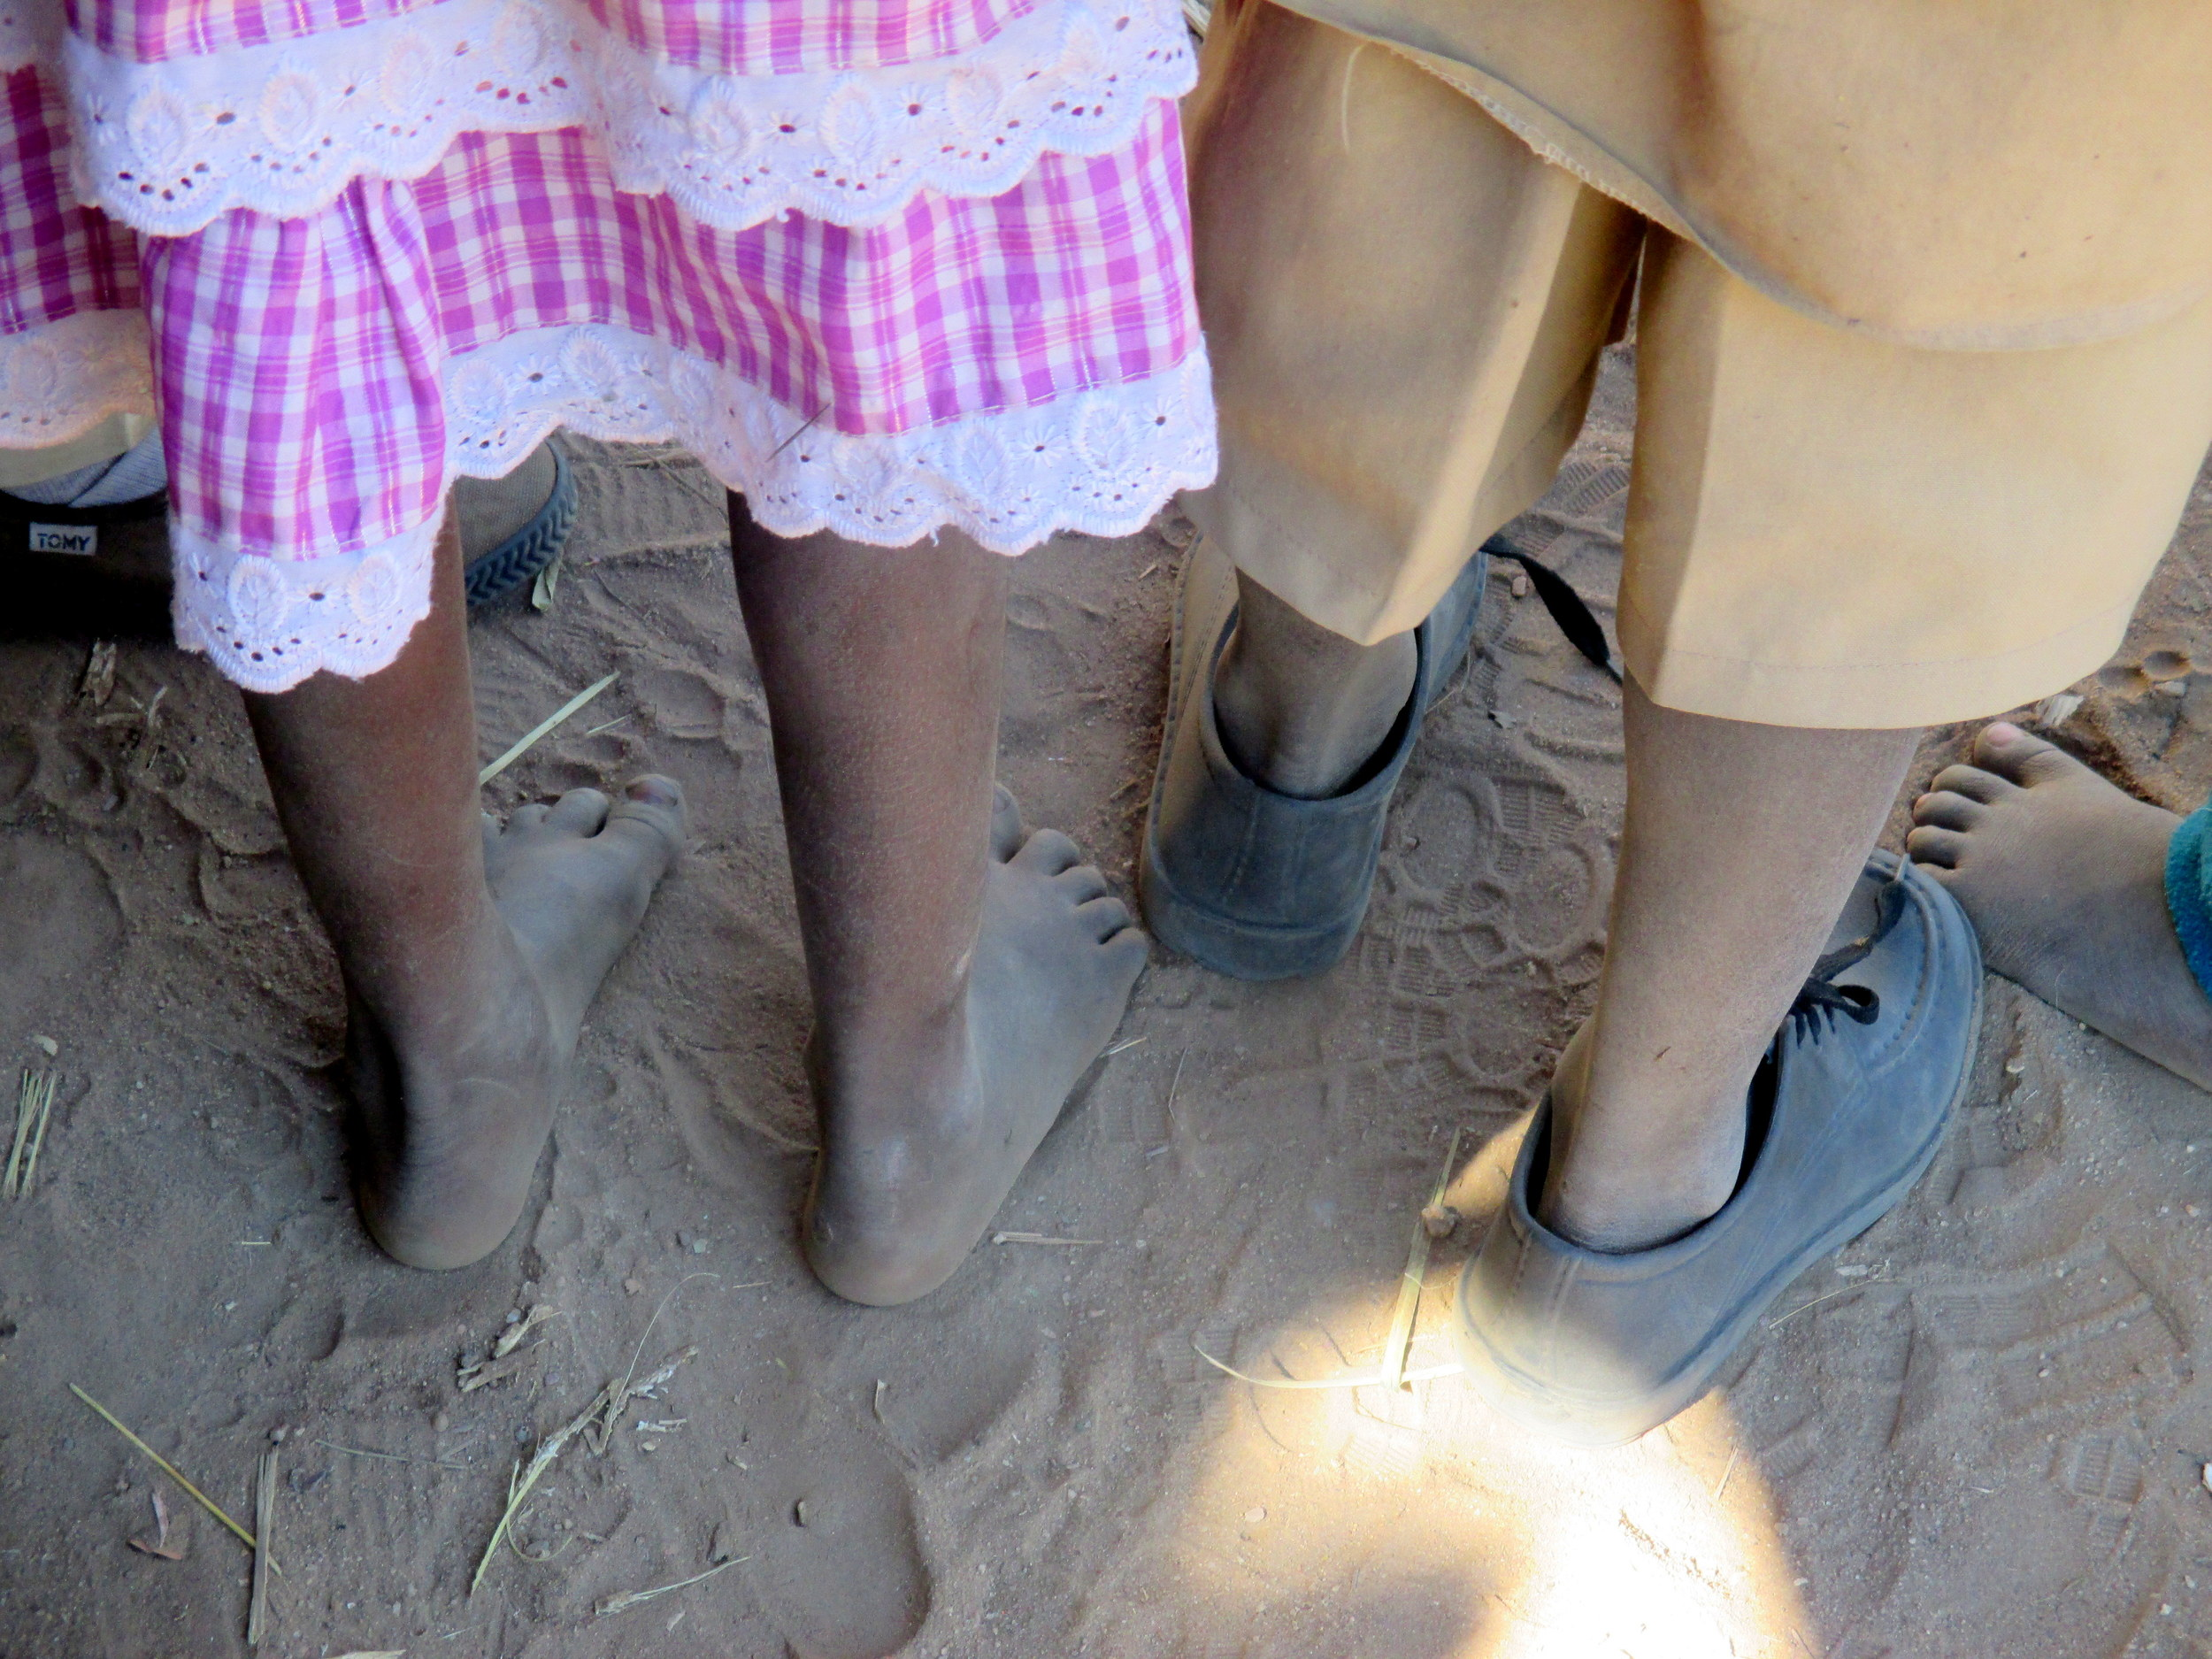 The economic impacts of the drought and failed harvests on poor families mean that few parents have the money to buy shoes for their children, let alone uniforms.